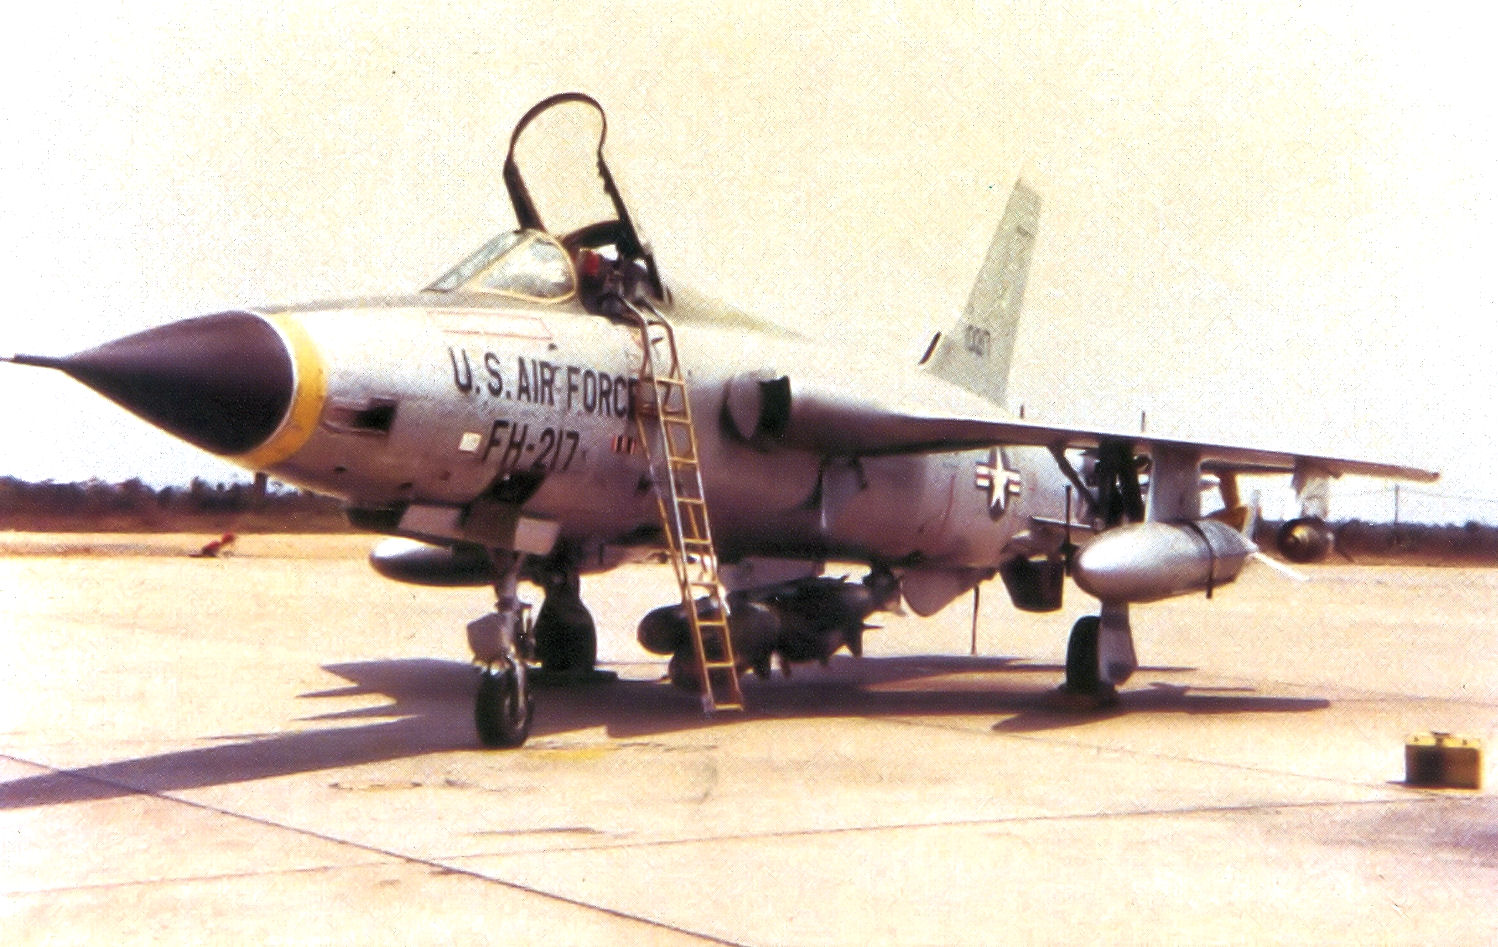 67th TFS Republic F-105D-25-RE Thunderchief 61-0217. On 16 September 1965 Risner was flying this aircraft when he was shot down by anti-aircraft artillery.